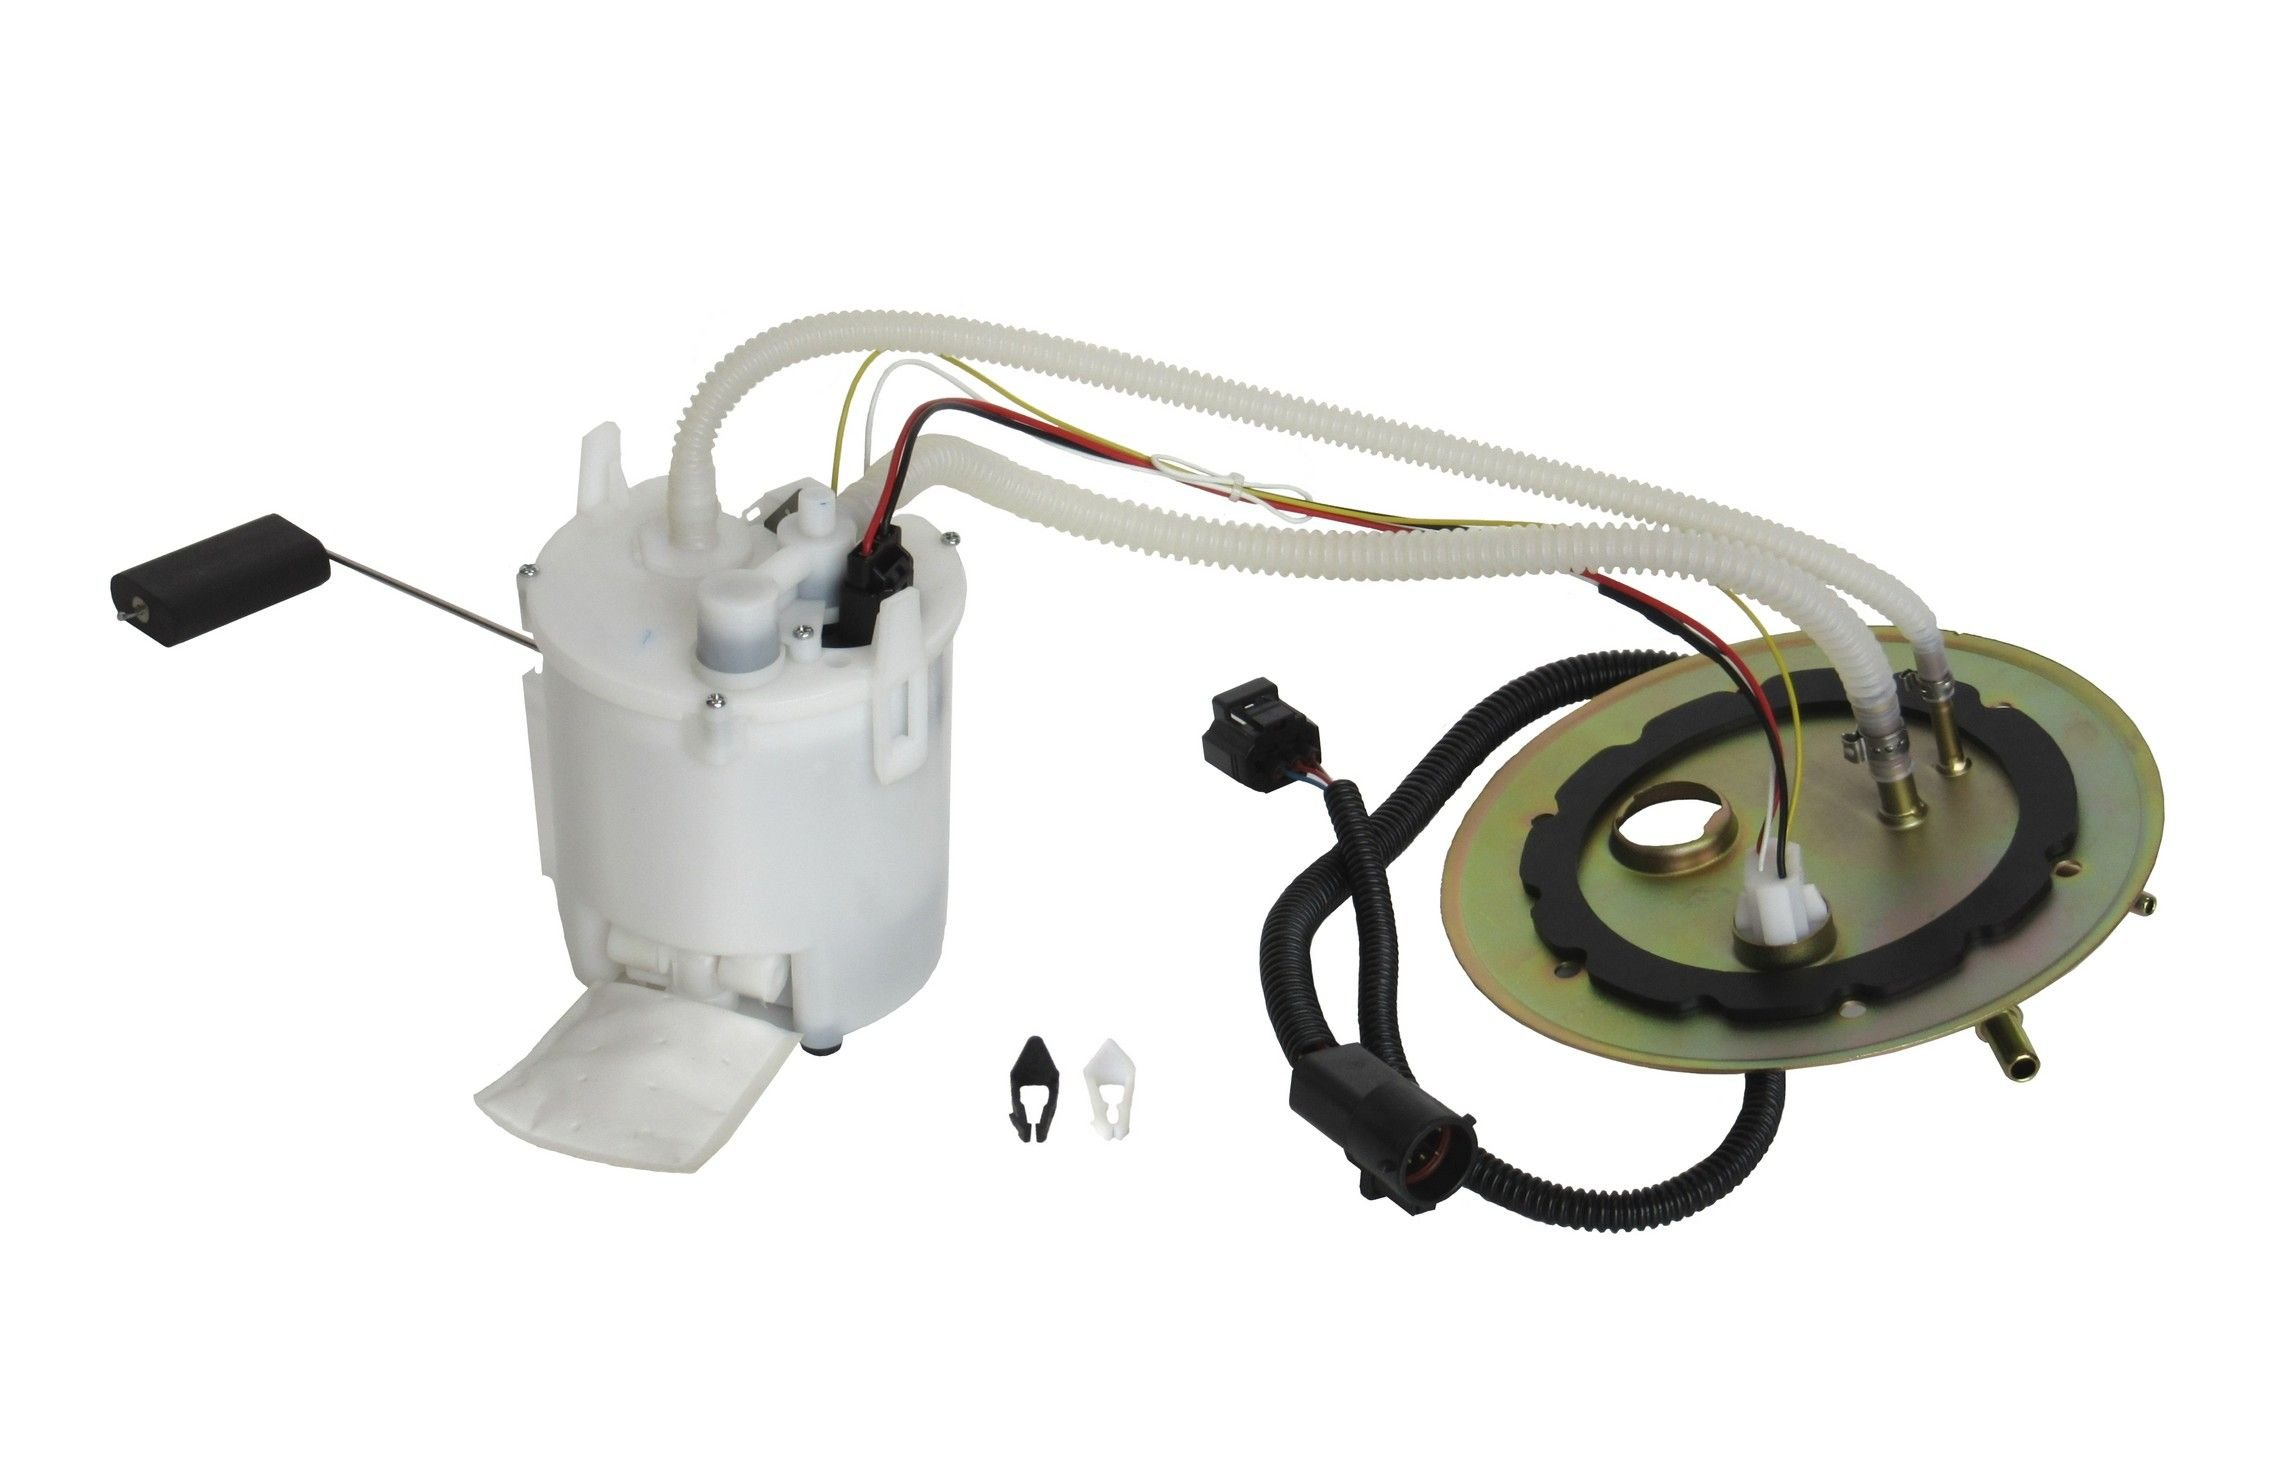 Ford F 250 Super Duty Fuel Pump Module Assembly Replacement Airtex 1999 Filter Gasket 2007 8 Cyl 54l Autobest F1453a Rear Tank Includes Sending Unit Float Reservoir